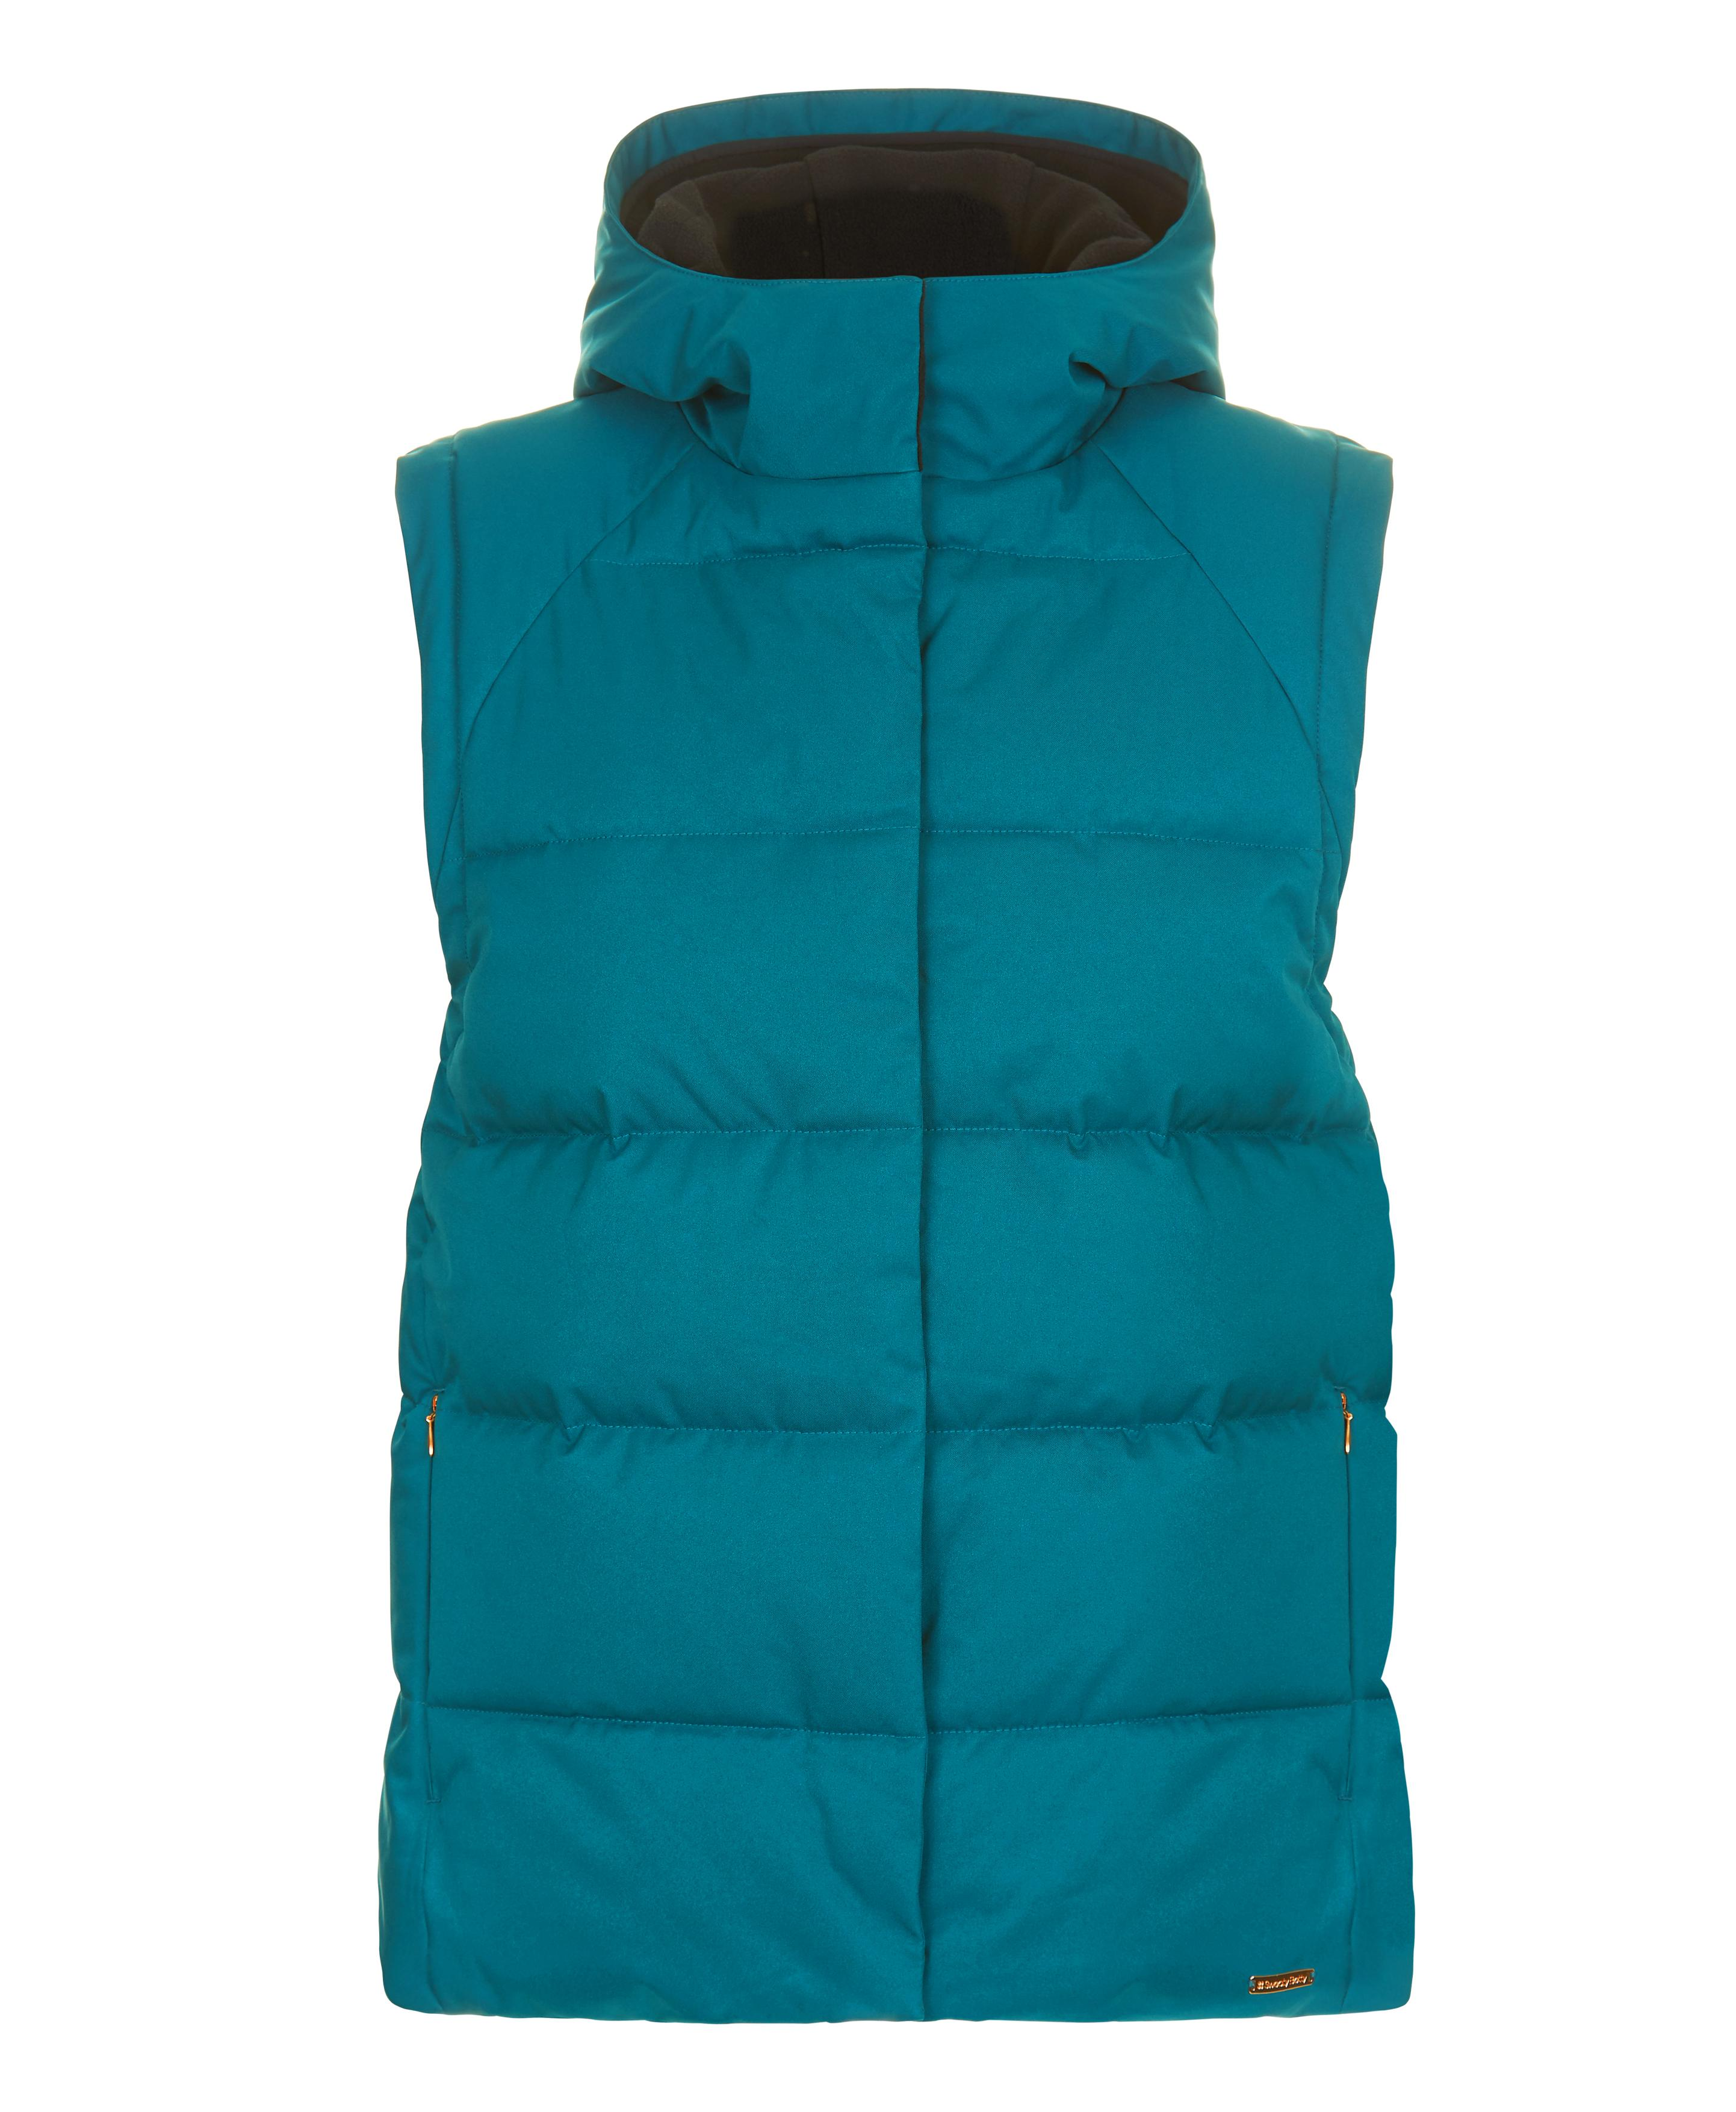 Sweaty Betty Boyfriend Vest // Price: $250 // (Image: Sweaty Betty)<p></p>